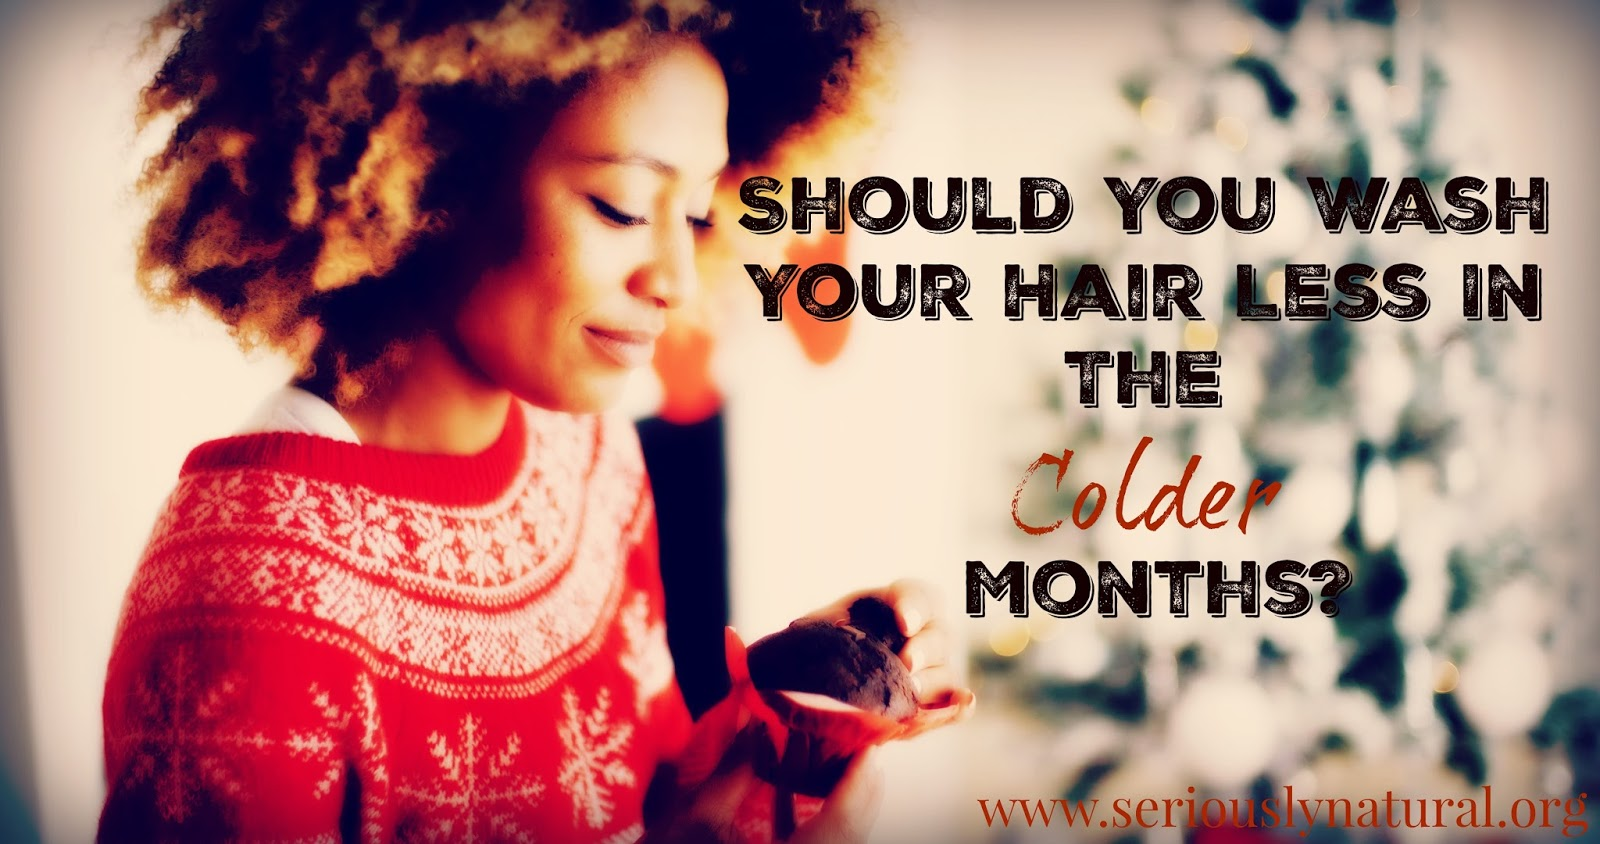 Should You Wash Your Hair Less In The Colder Months? Winter Hair Tips That Aid In Keeping Natural Hair Moisturized, Healthy & Beautiful!